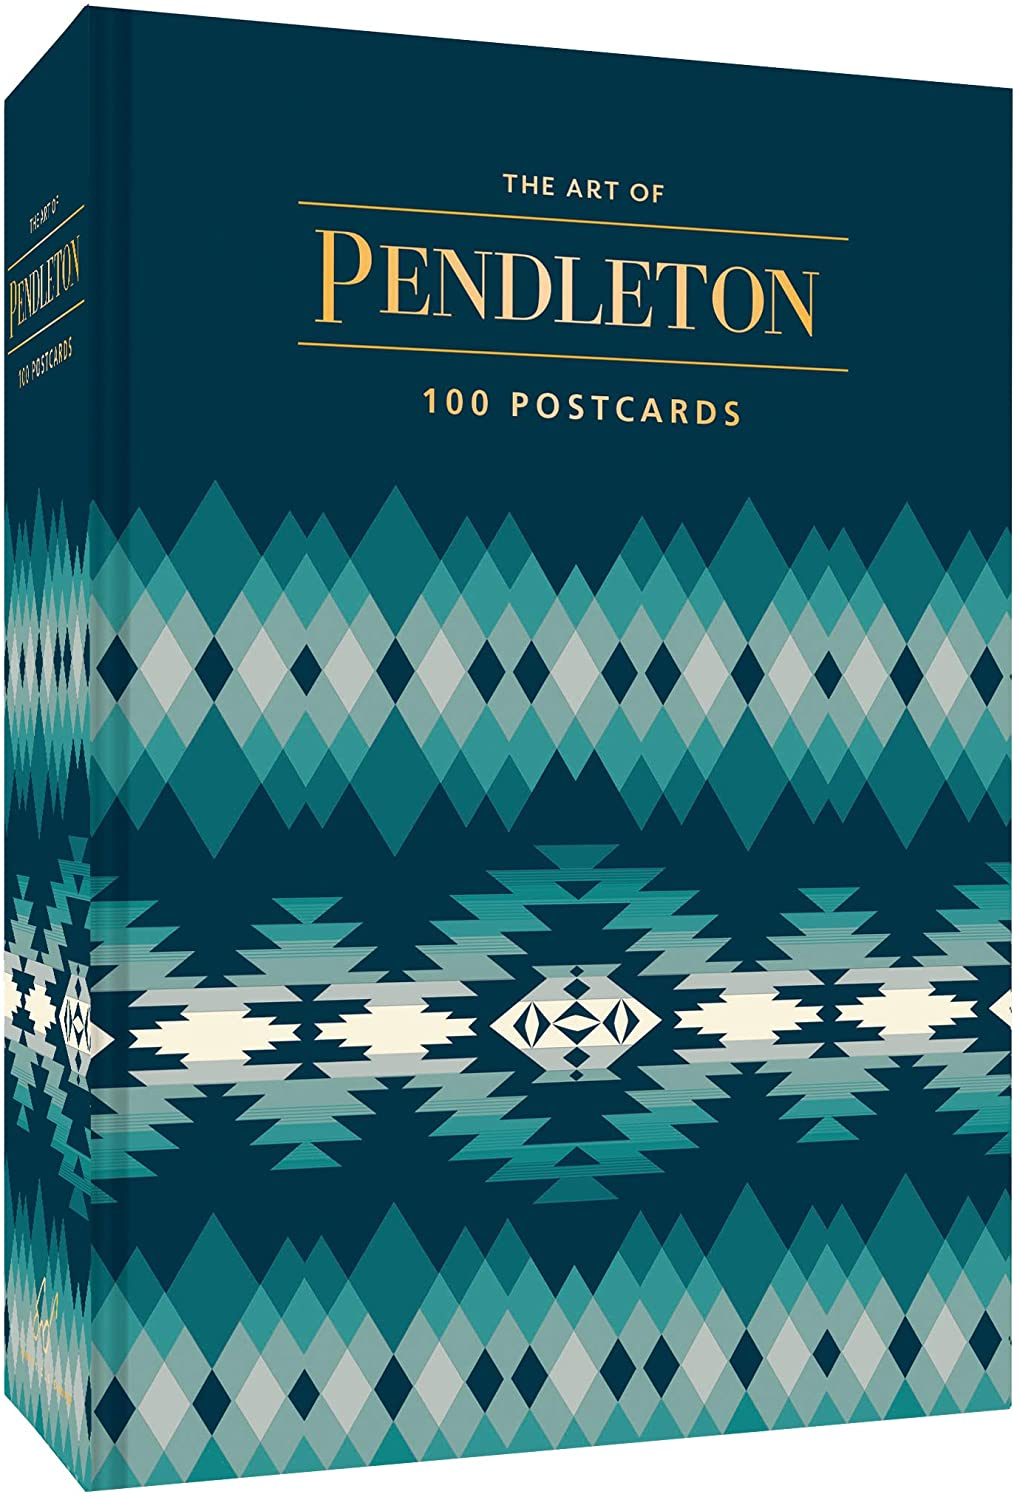 The Art of Pendleton Postcard Box